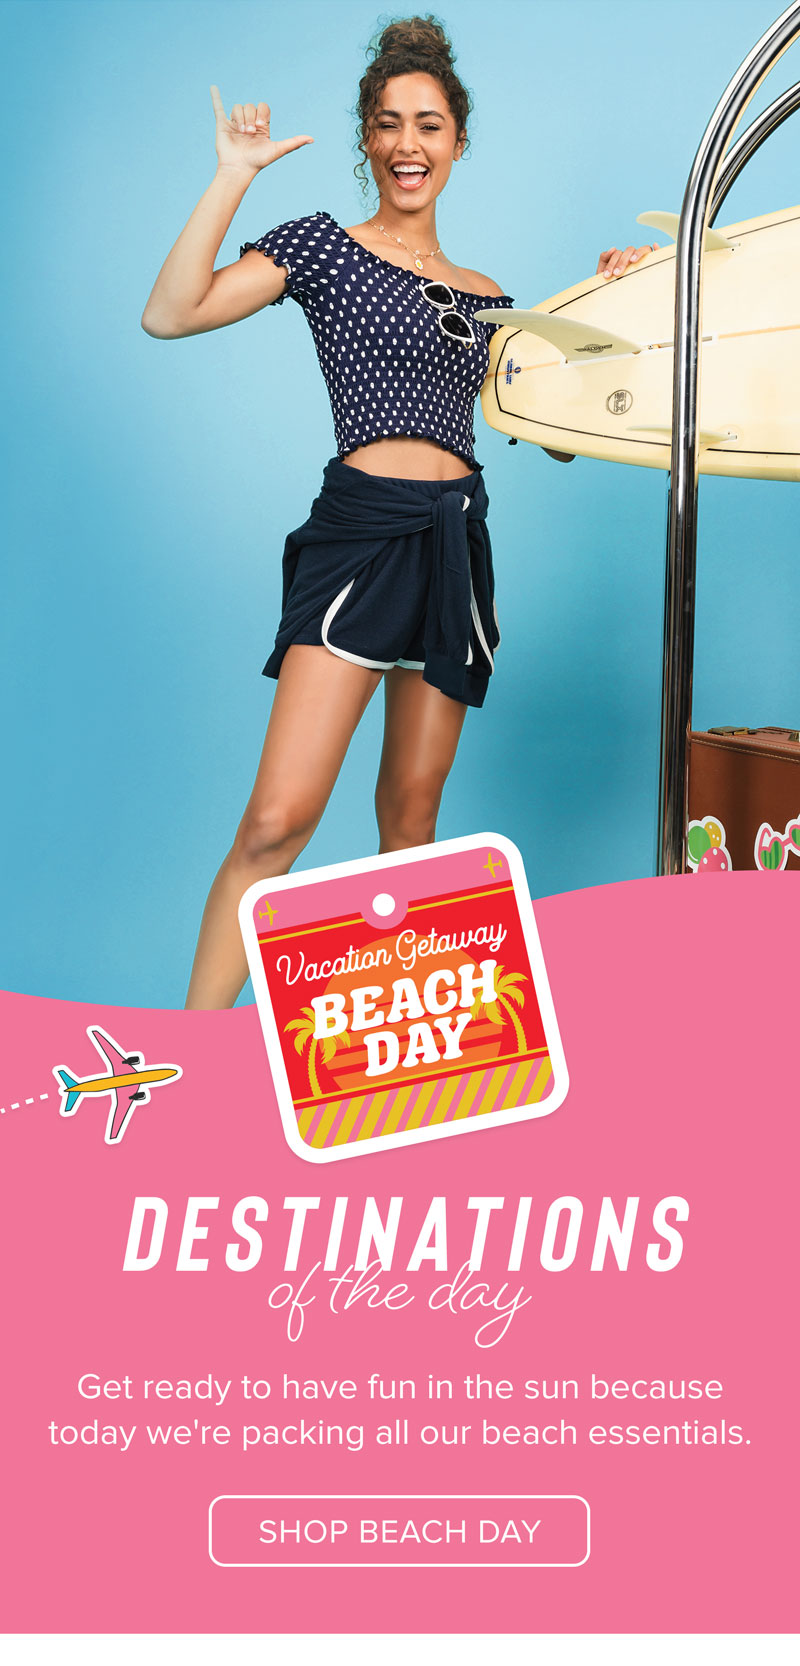 DESTINATIONS OF THE DAY! SHOP BEACH DAY